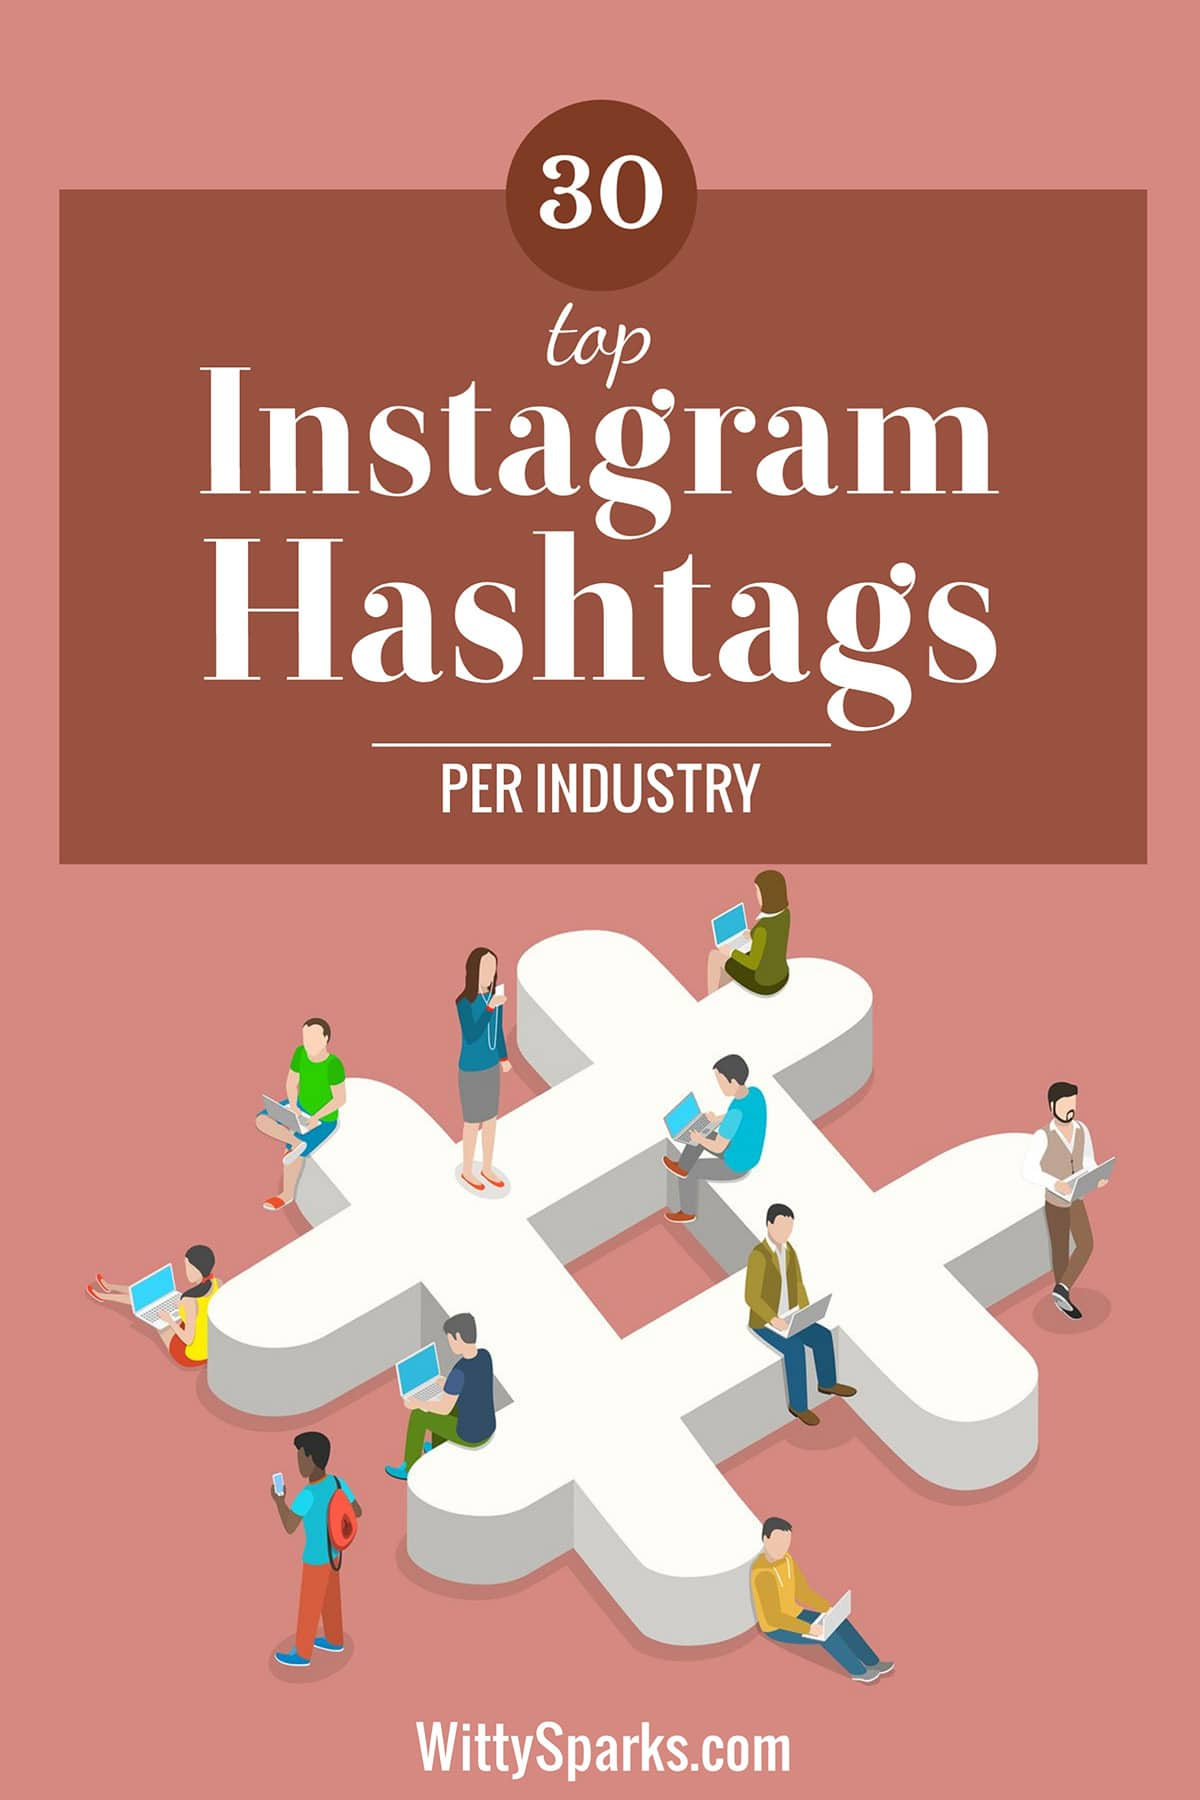 Popular list of Instagram hashtags as per industry